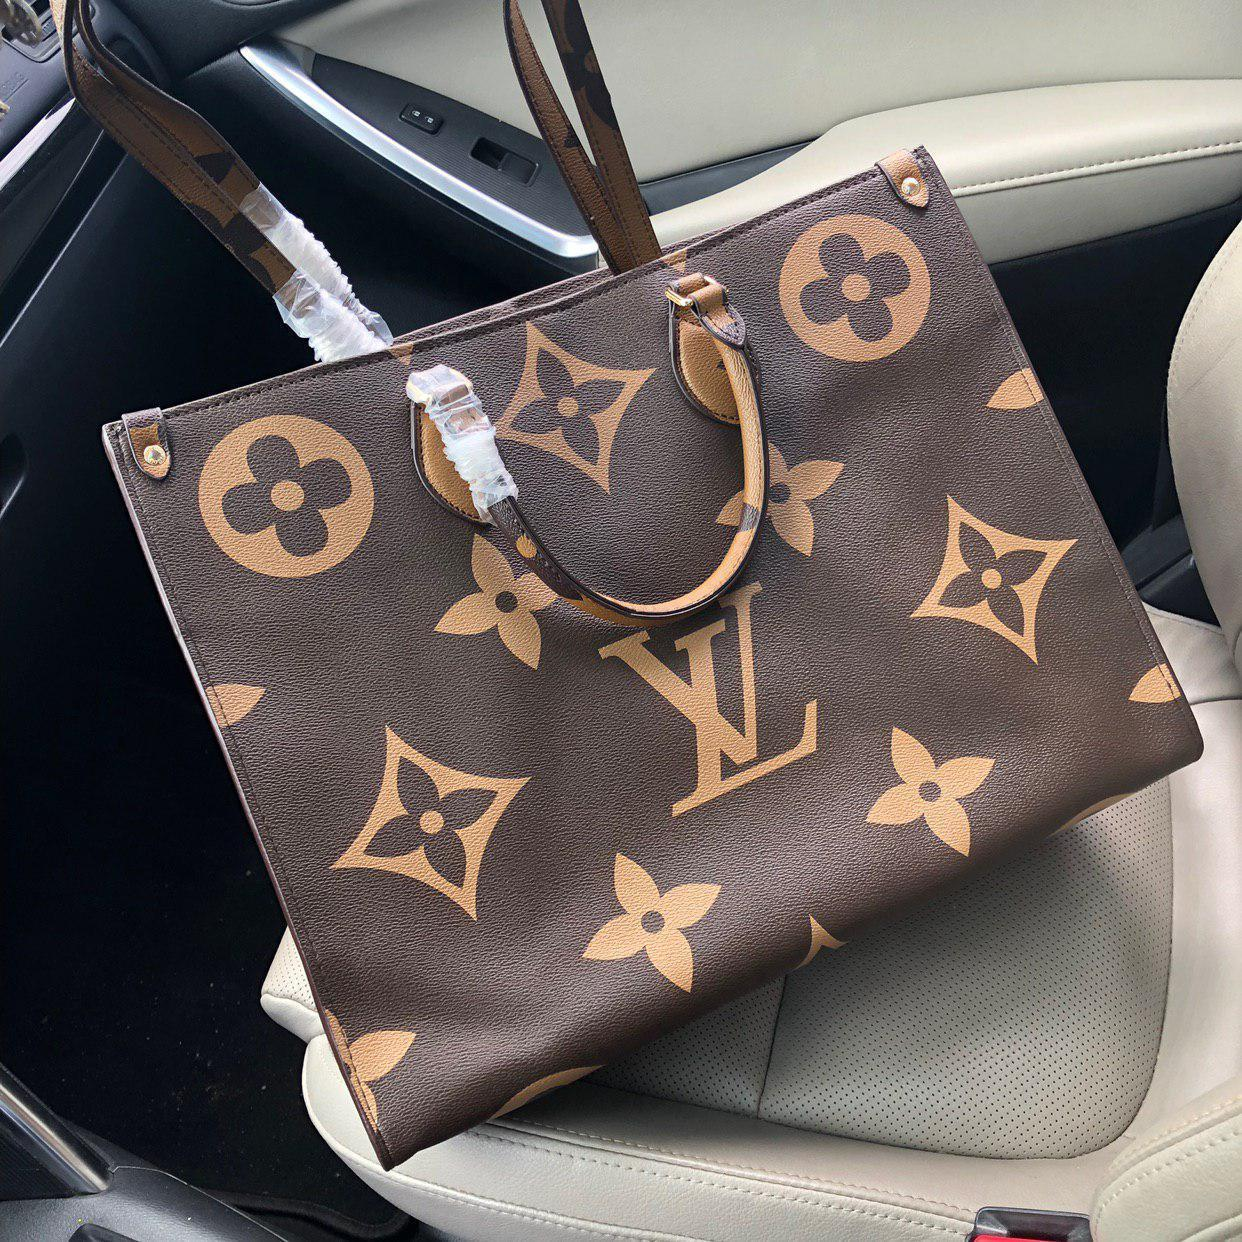 Сумка копия Louis Vuitton.